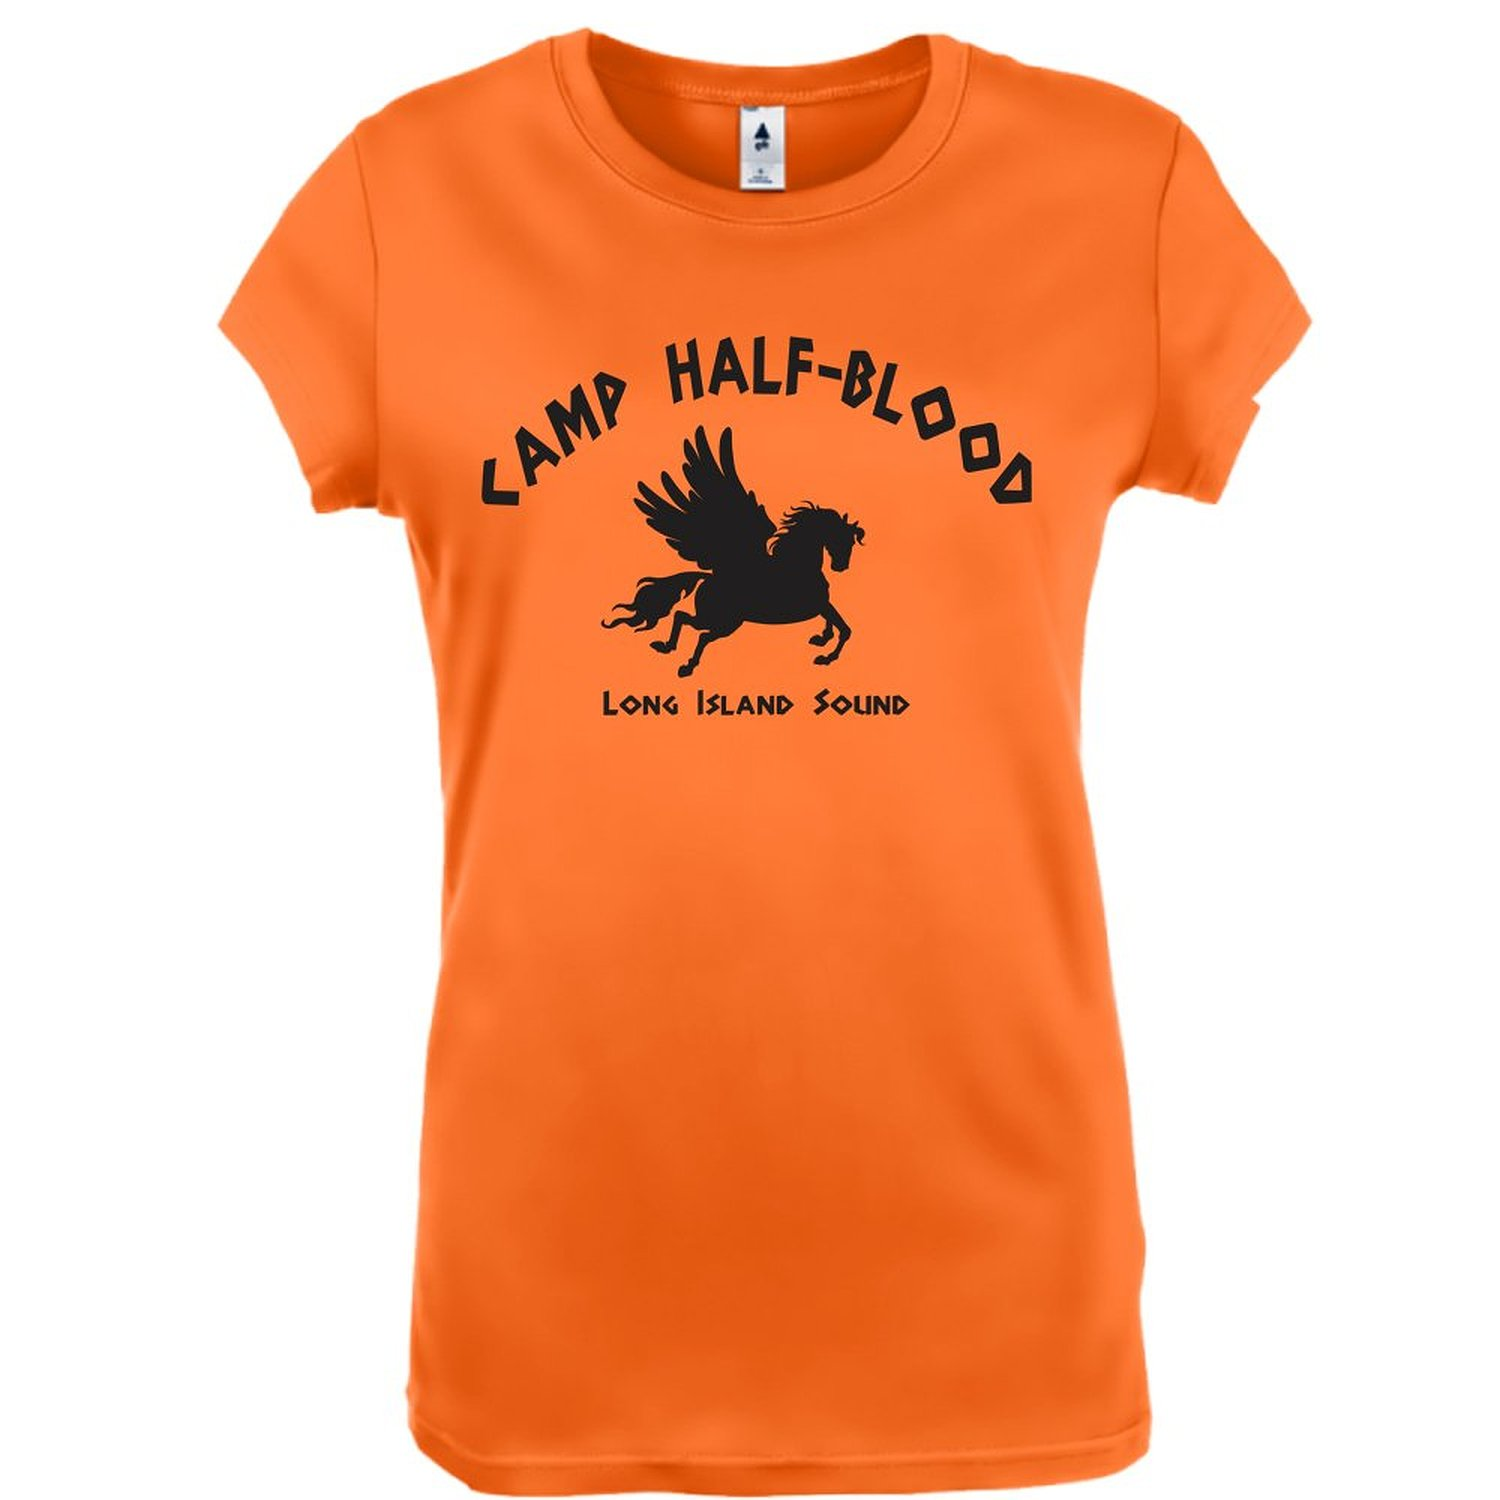 Amazon.com: Camp Half Blood Fun Half-Blood Cool Book Womens Shirt - Orange: Clothing